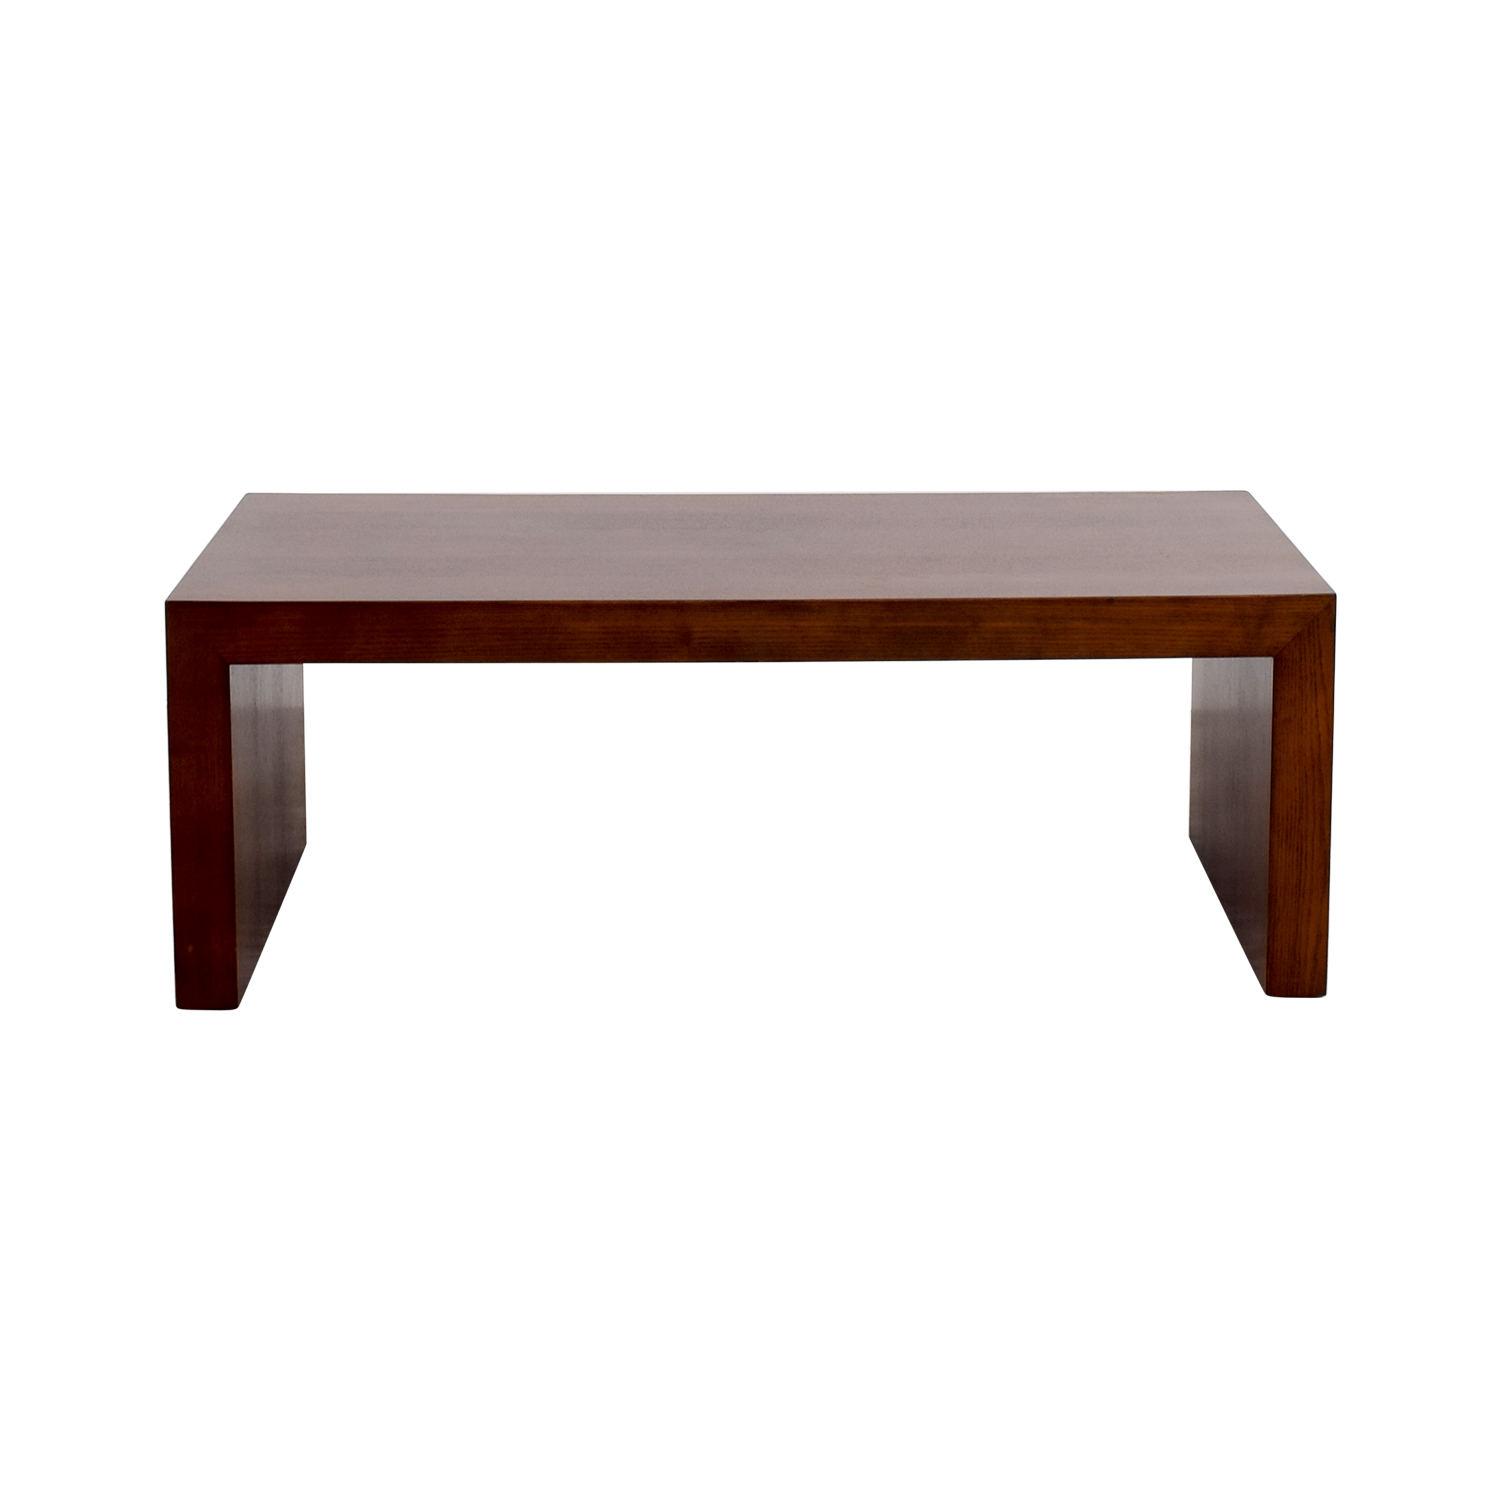 Ethan Allen Ethan Allen Wood Coffee Table Tables